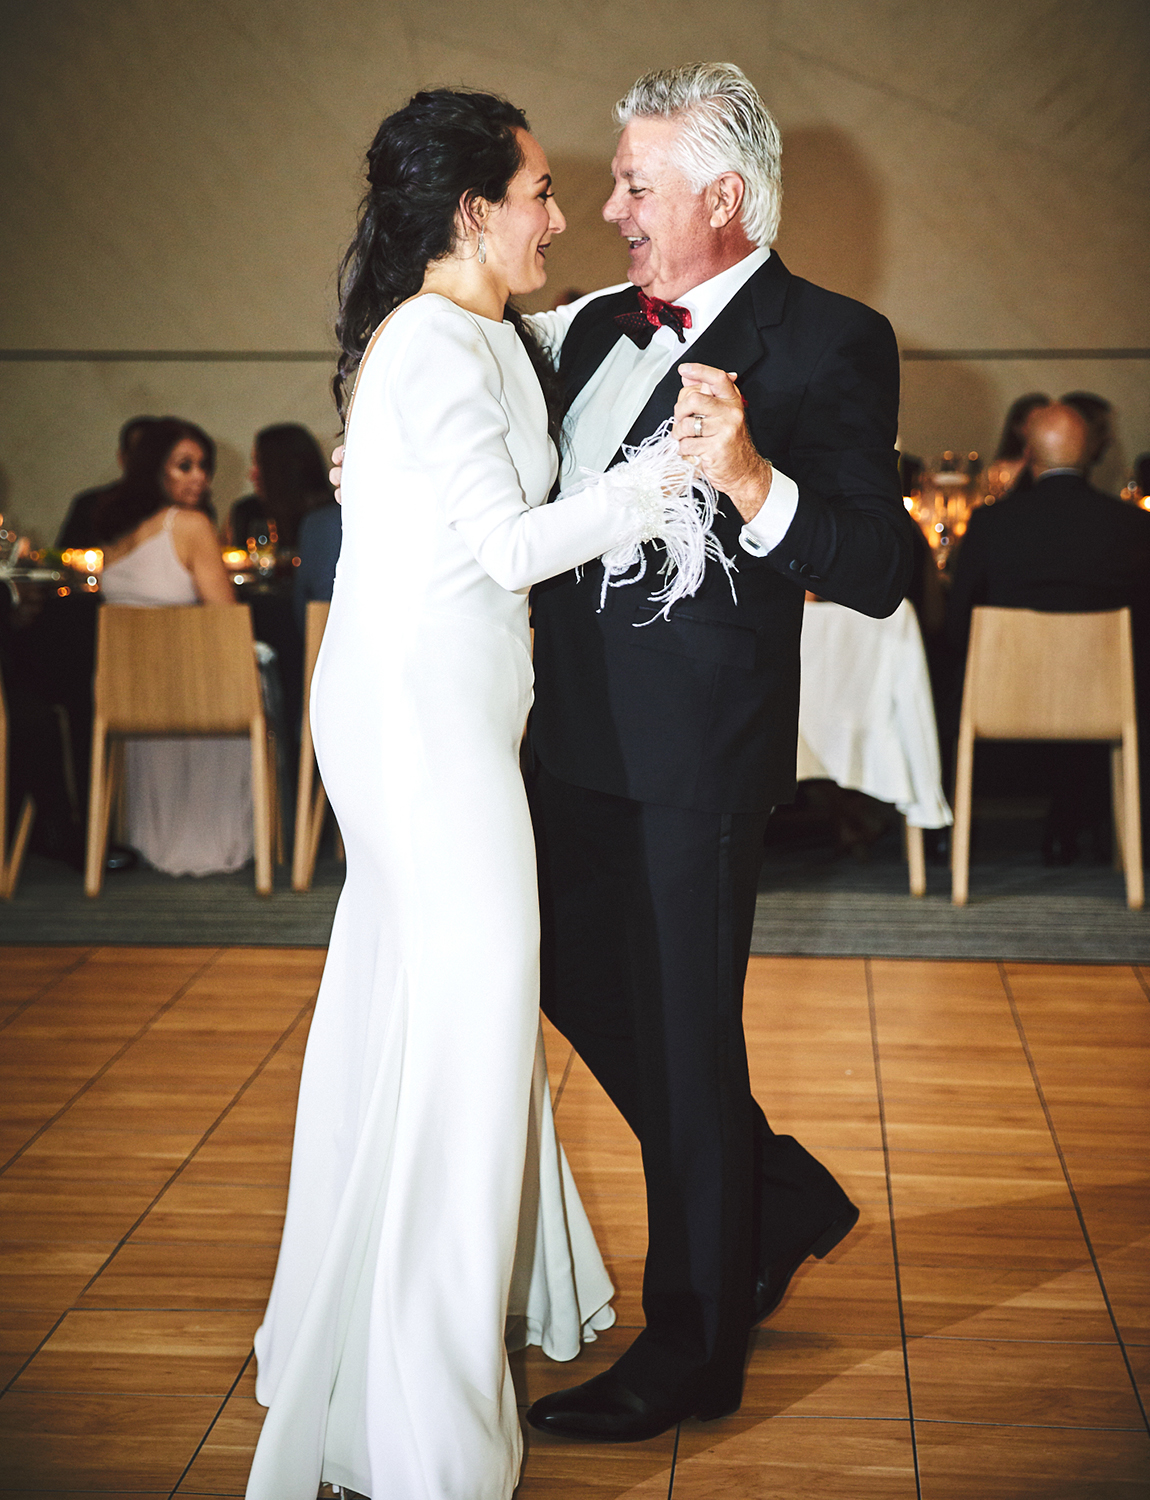 170930_WilliamValeWeddingPhotography_BrooklynWeddingPhotographer_By_BriJohnsonWeddings_0165.jpg